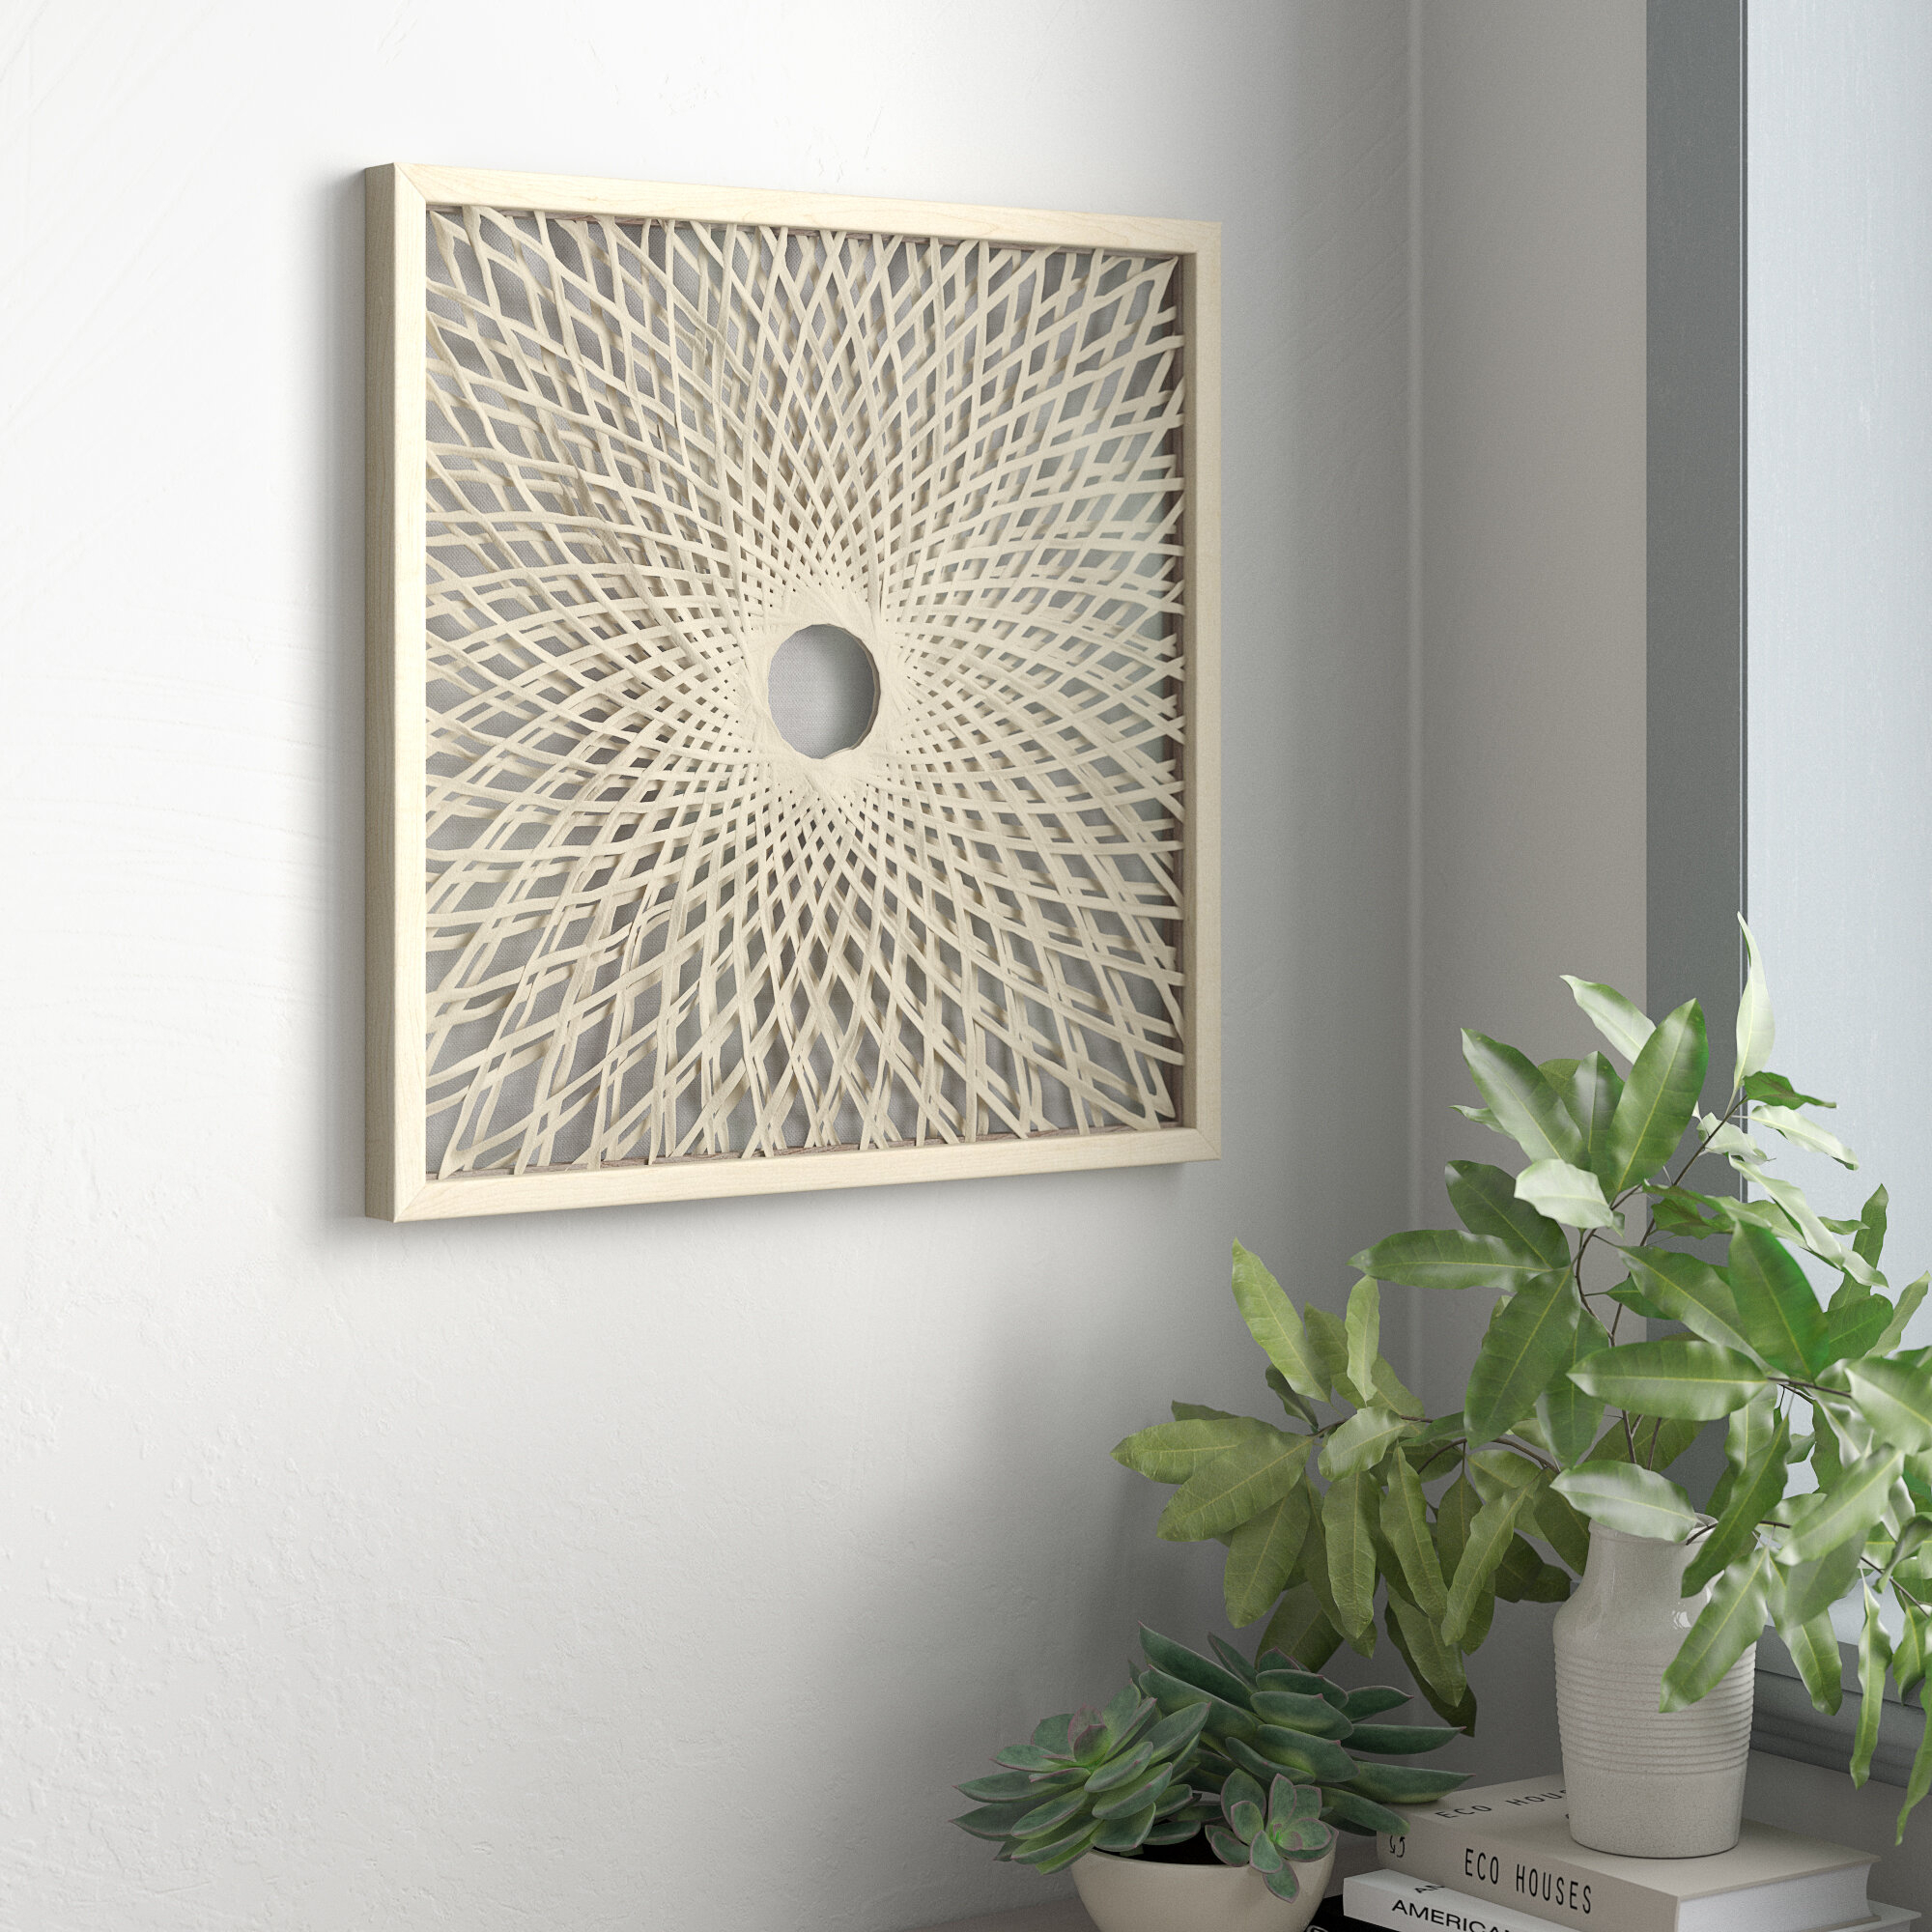 Wayfair With 4 Piece Handwoven Wheel Wall Decor Sets (Gallery 2 of 20)